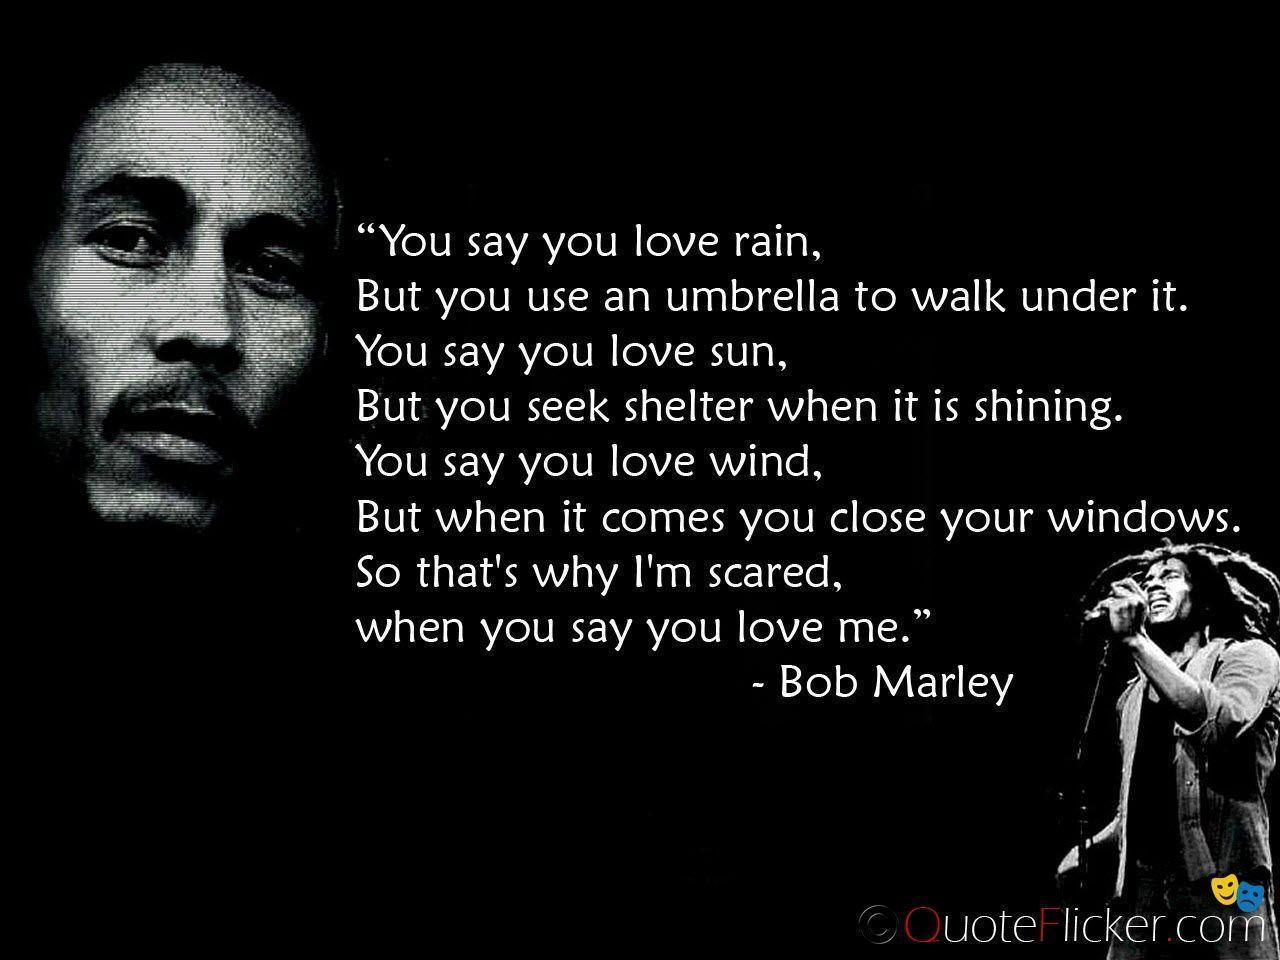 Bob Marley Quotes Wallpapers Wallpaper Cave